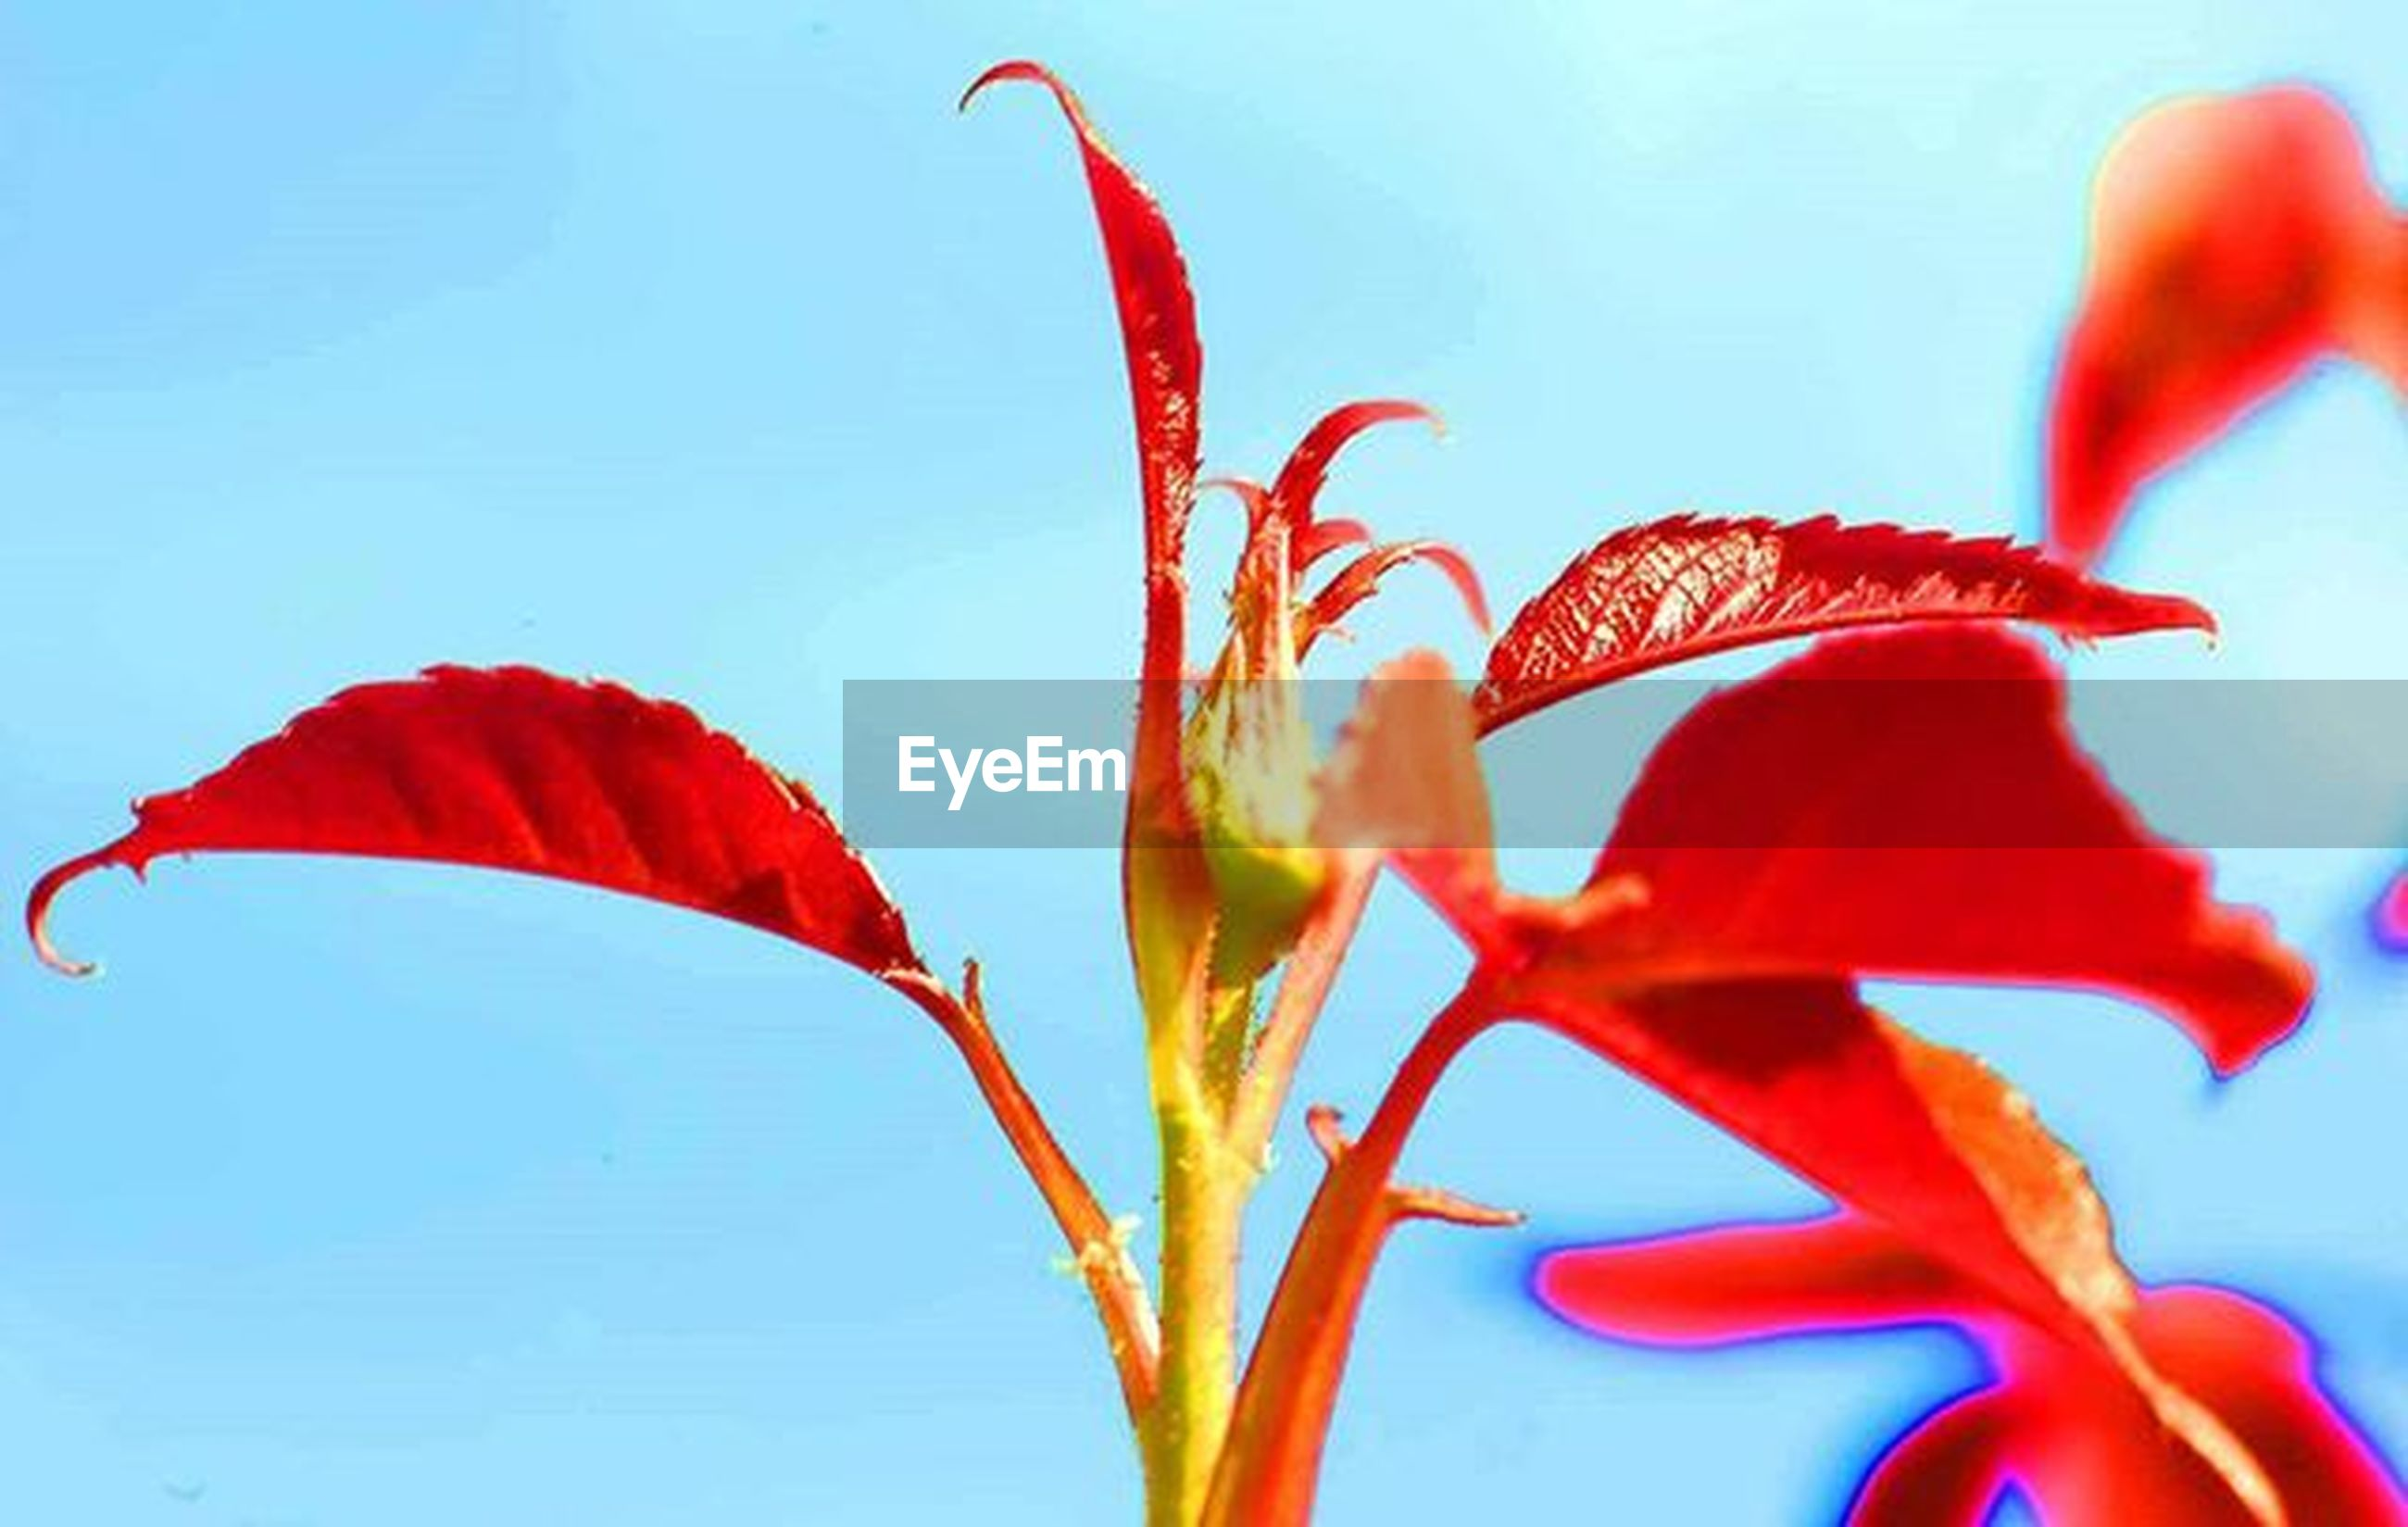 flower, petal, freshness, fragility, flower head, growth, close-up, beauty in nature, red, stem, clear sky, plant, nature, blooming, low angle view, in bloom, bud, focus on foreground, sky, leaf